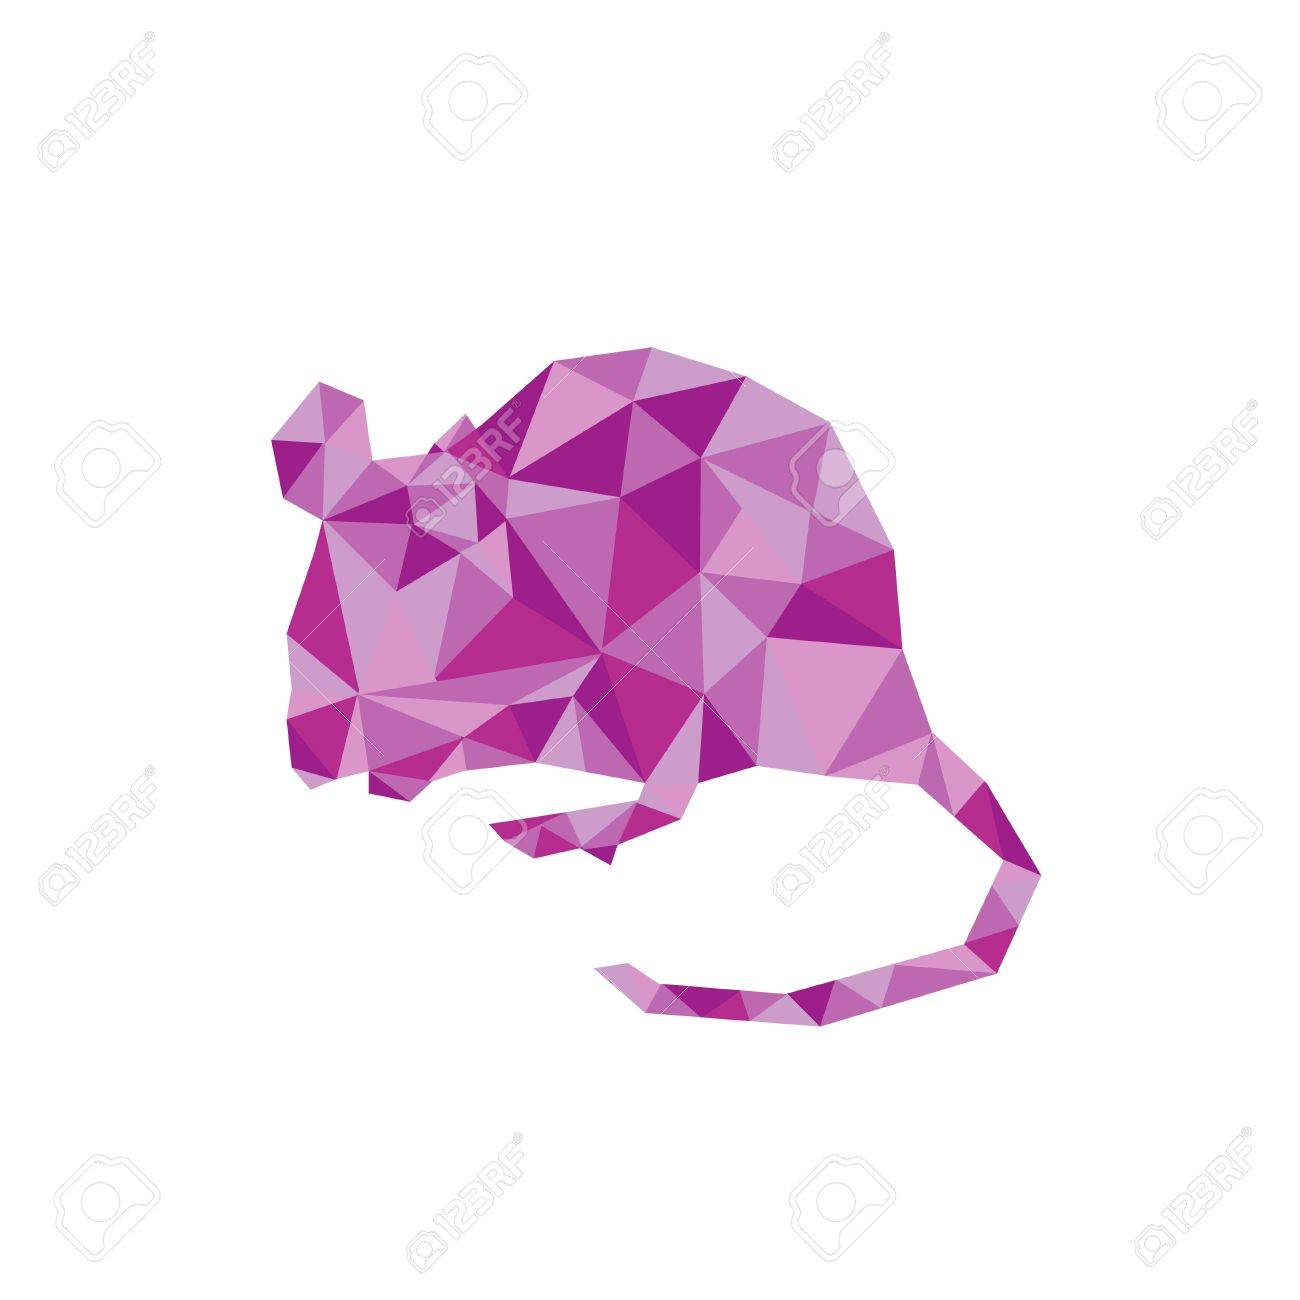 Rat polygon royalty free cliparts vectors and stock illustration rat polygon stock vector 34298759 jeuxipadfo Images